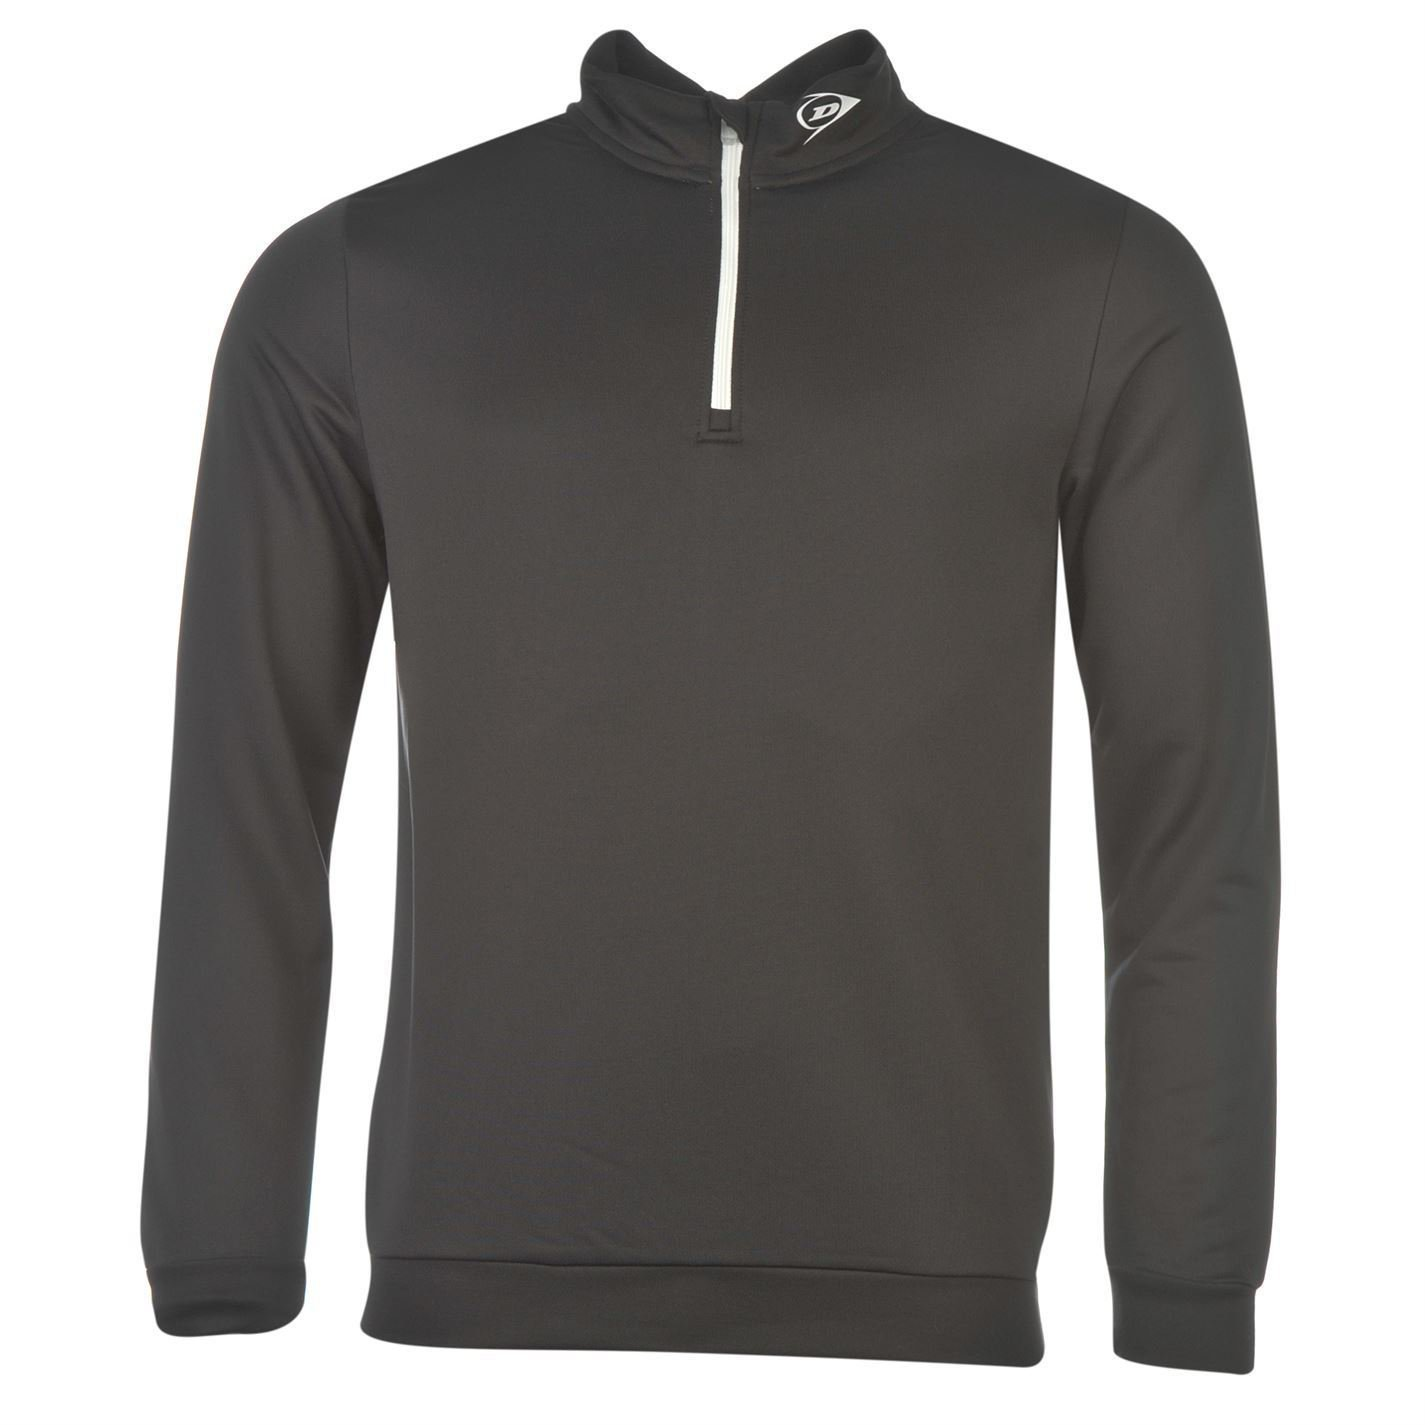 Dunlop Mens Quarter Zip Golf Pullover Long Sleeve Top Lightweight Elasticated